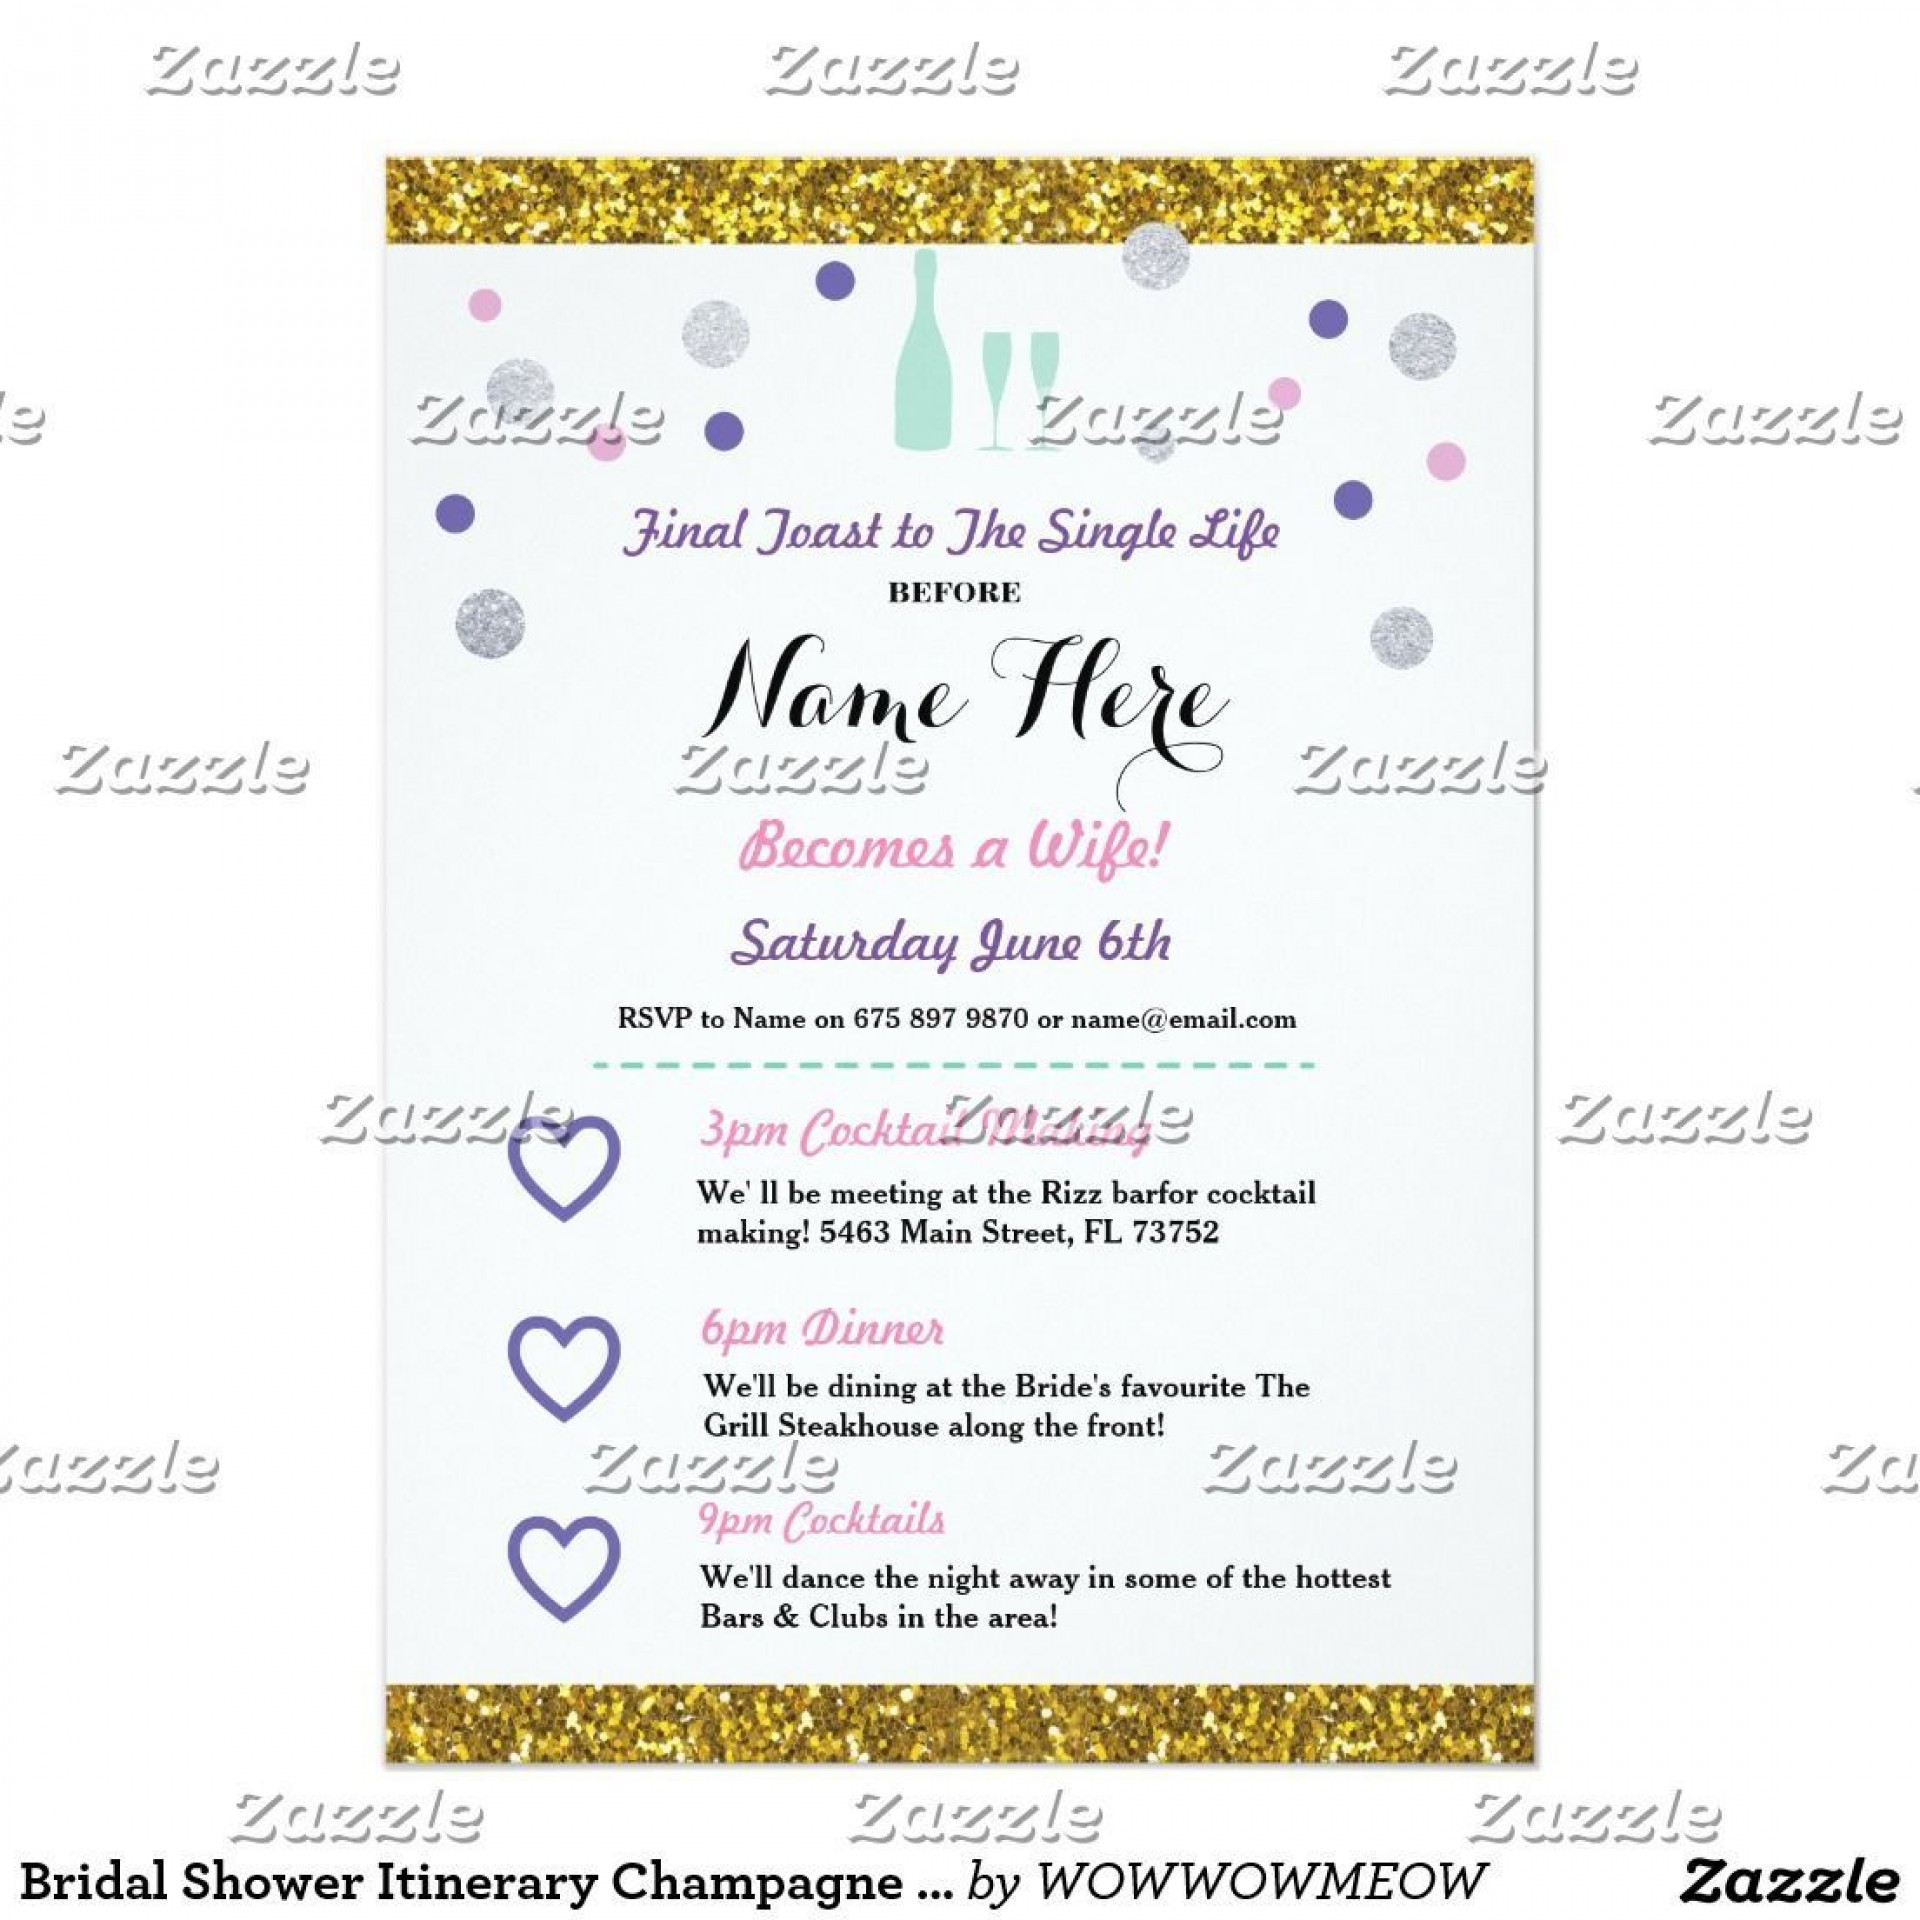 006 Unusual Bachelorette Itinerary Template Free High Resolution  Party Editable Download1920